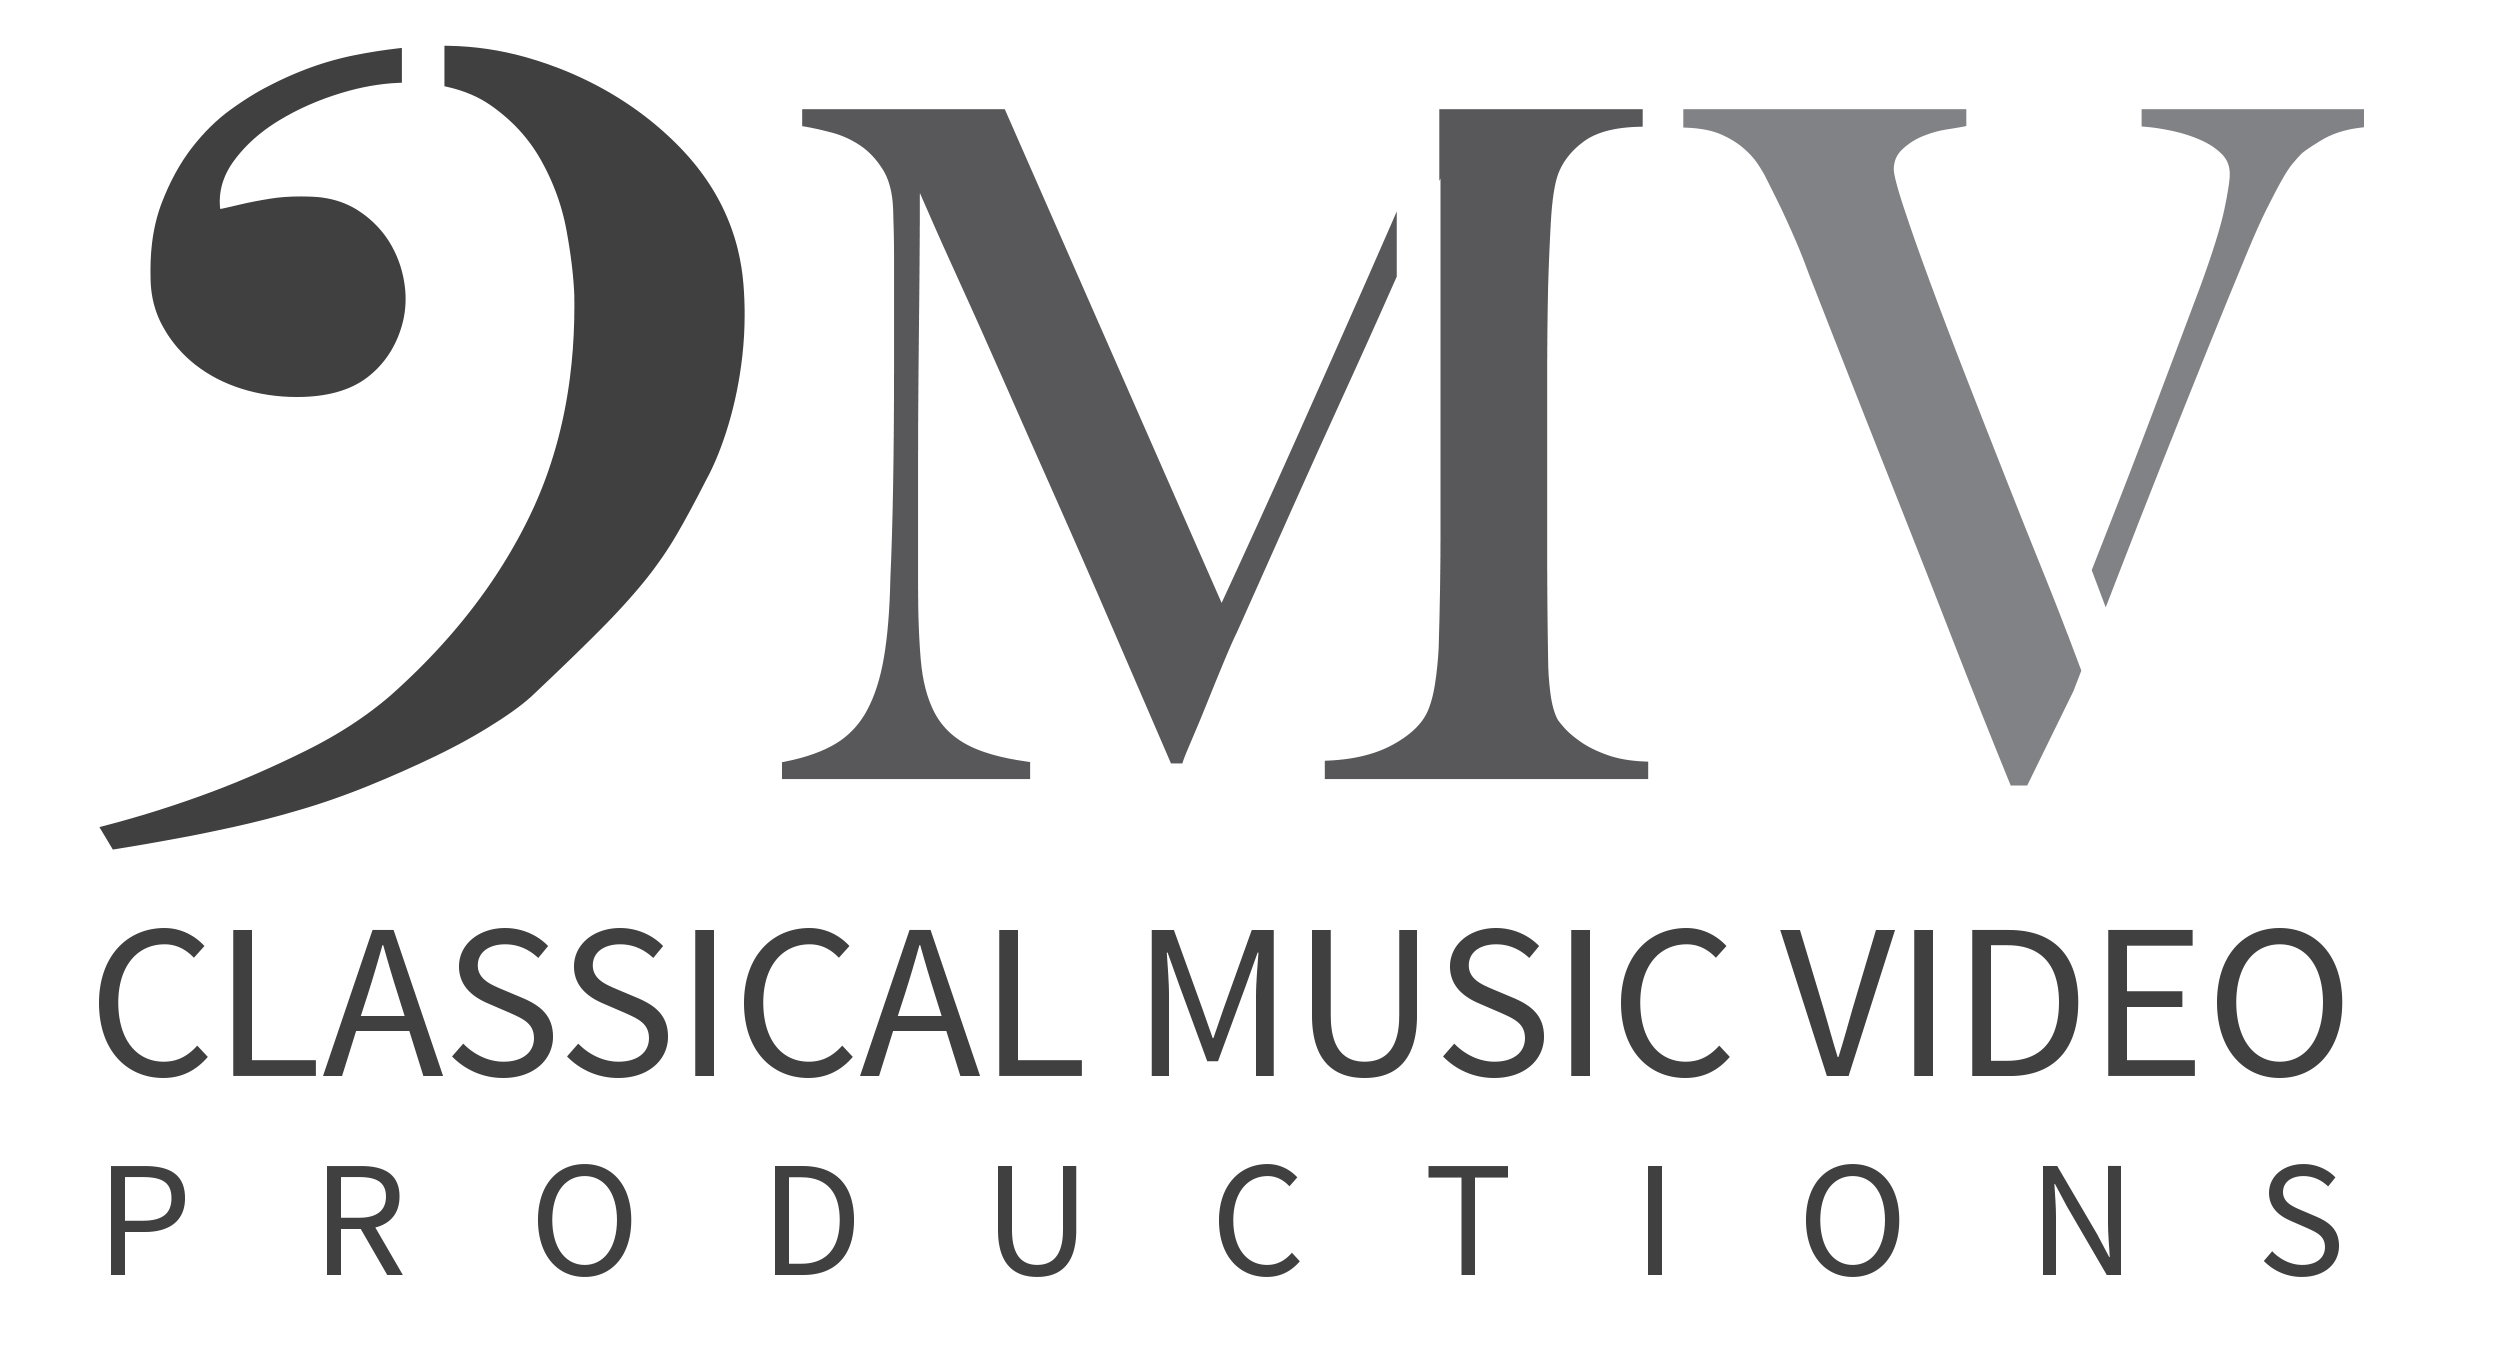 Classical Music Video Productions